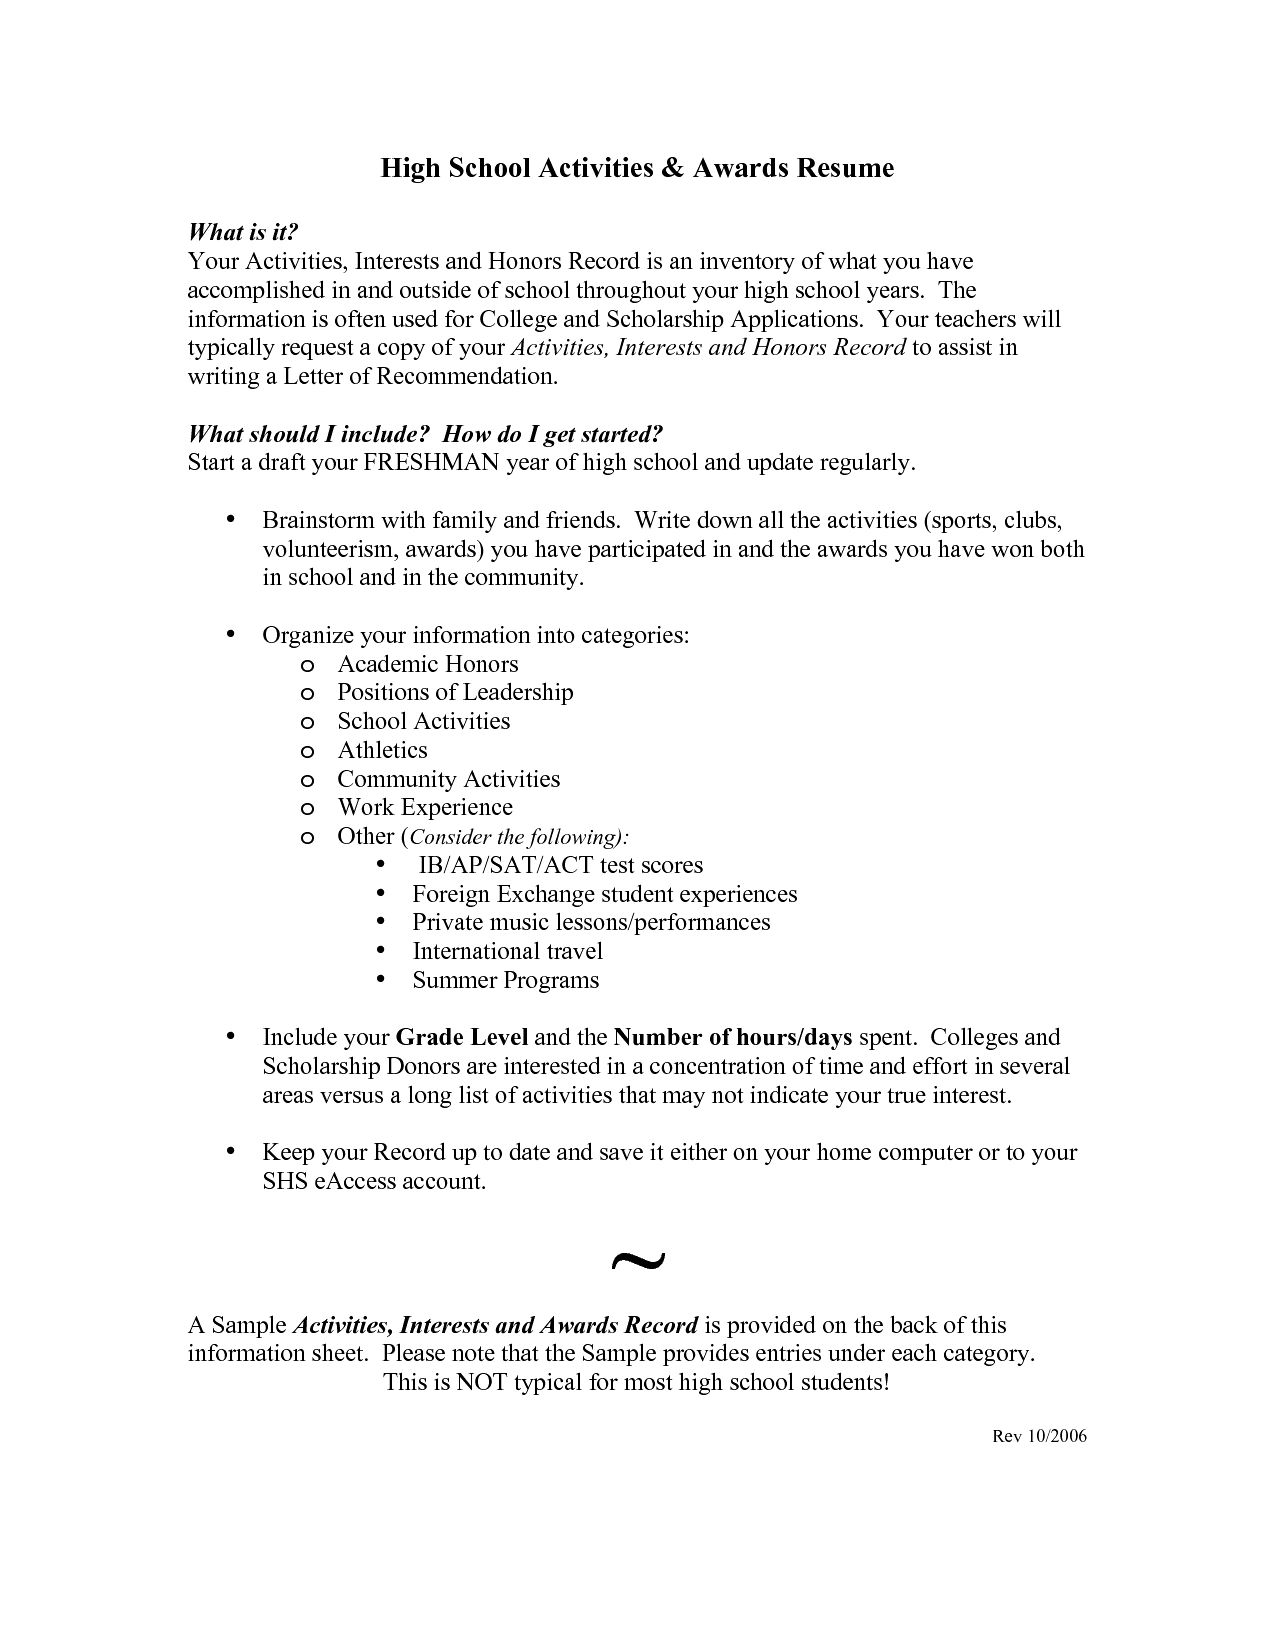 Resume Title Example Hobbies For Resume Writing Good Interests Personal Interest Cover